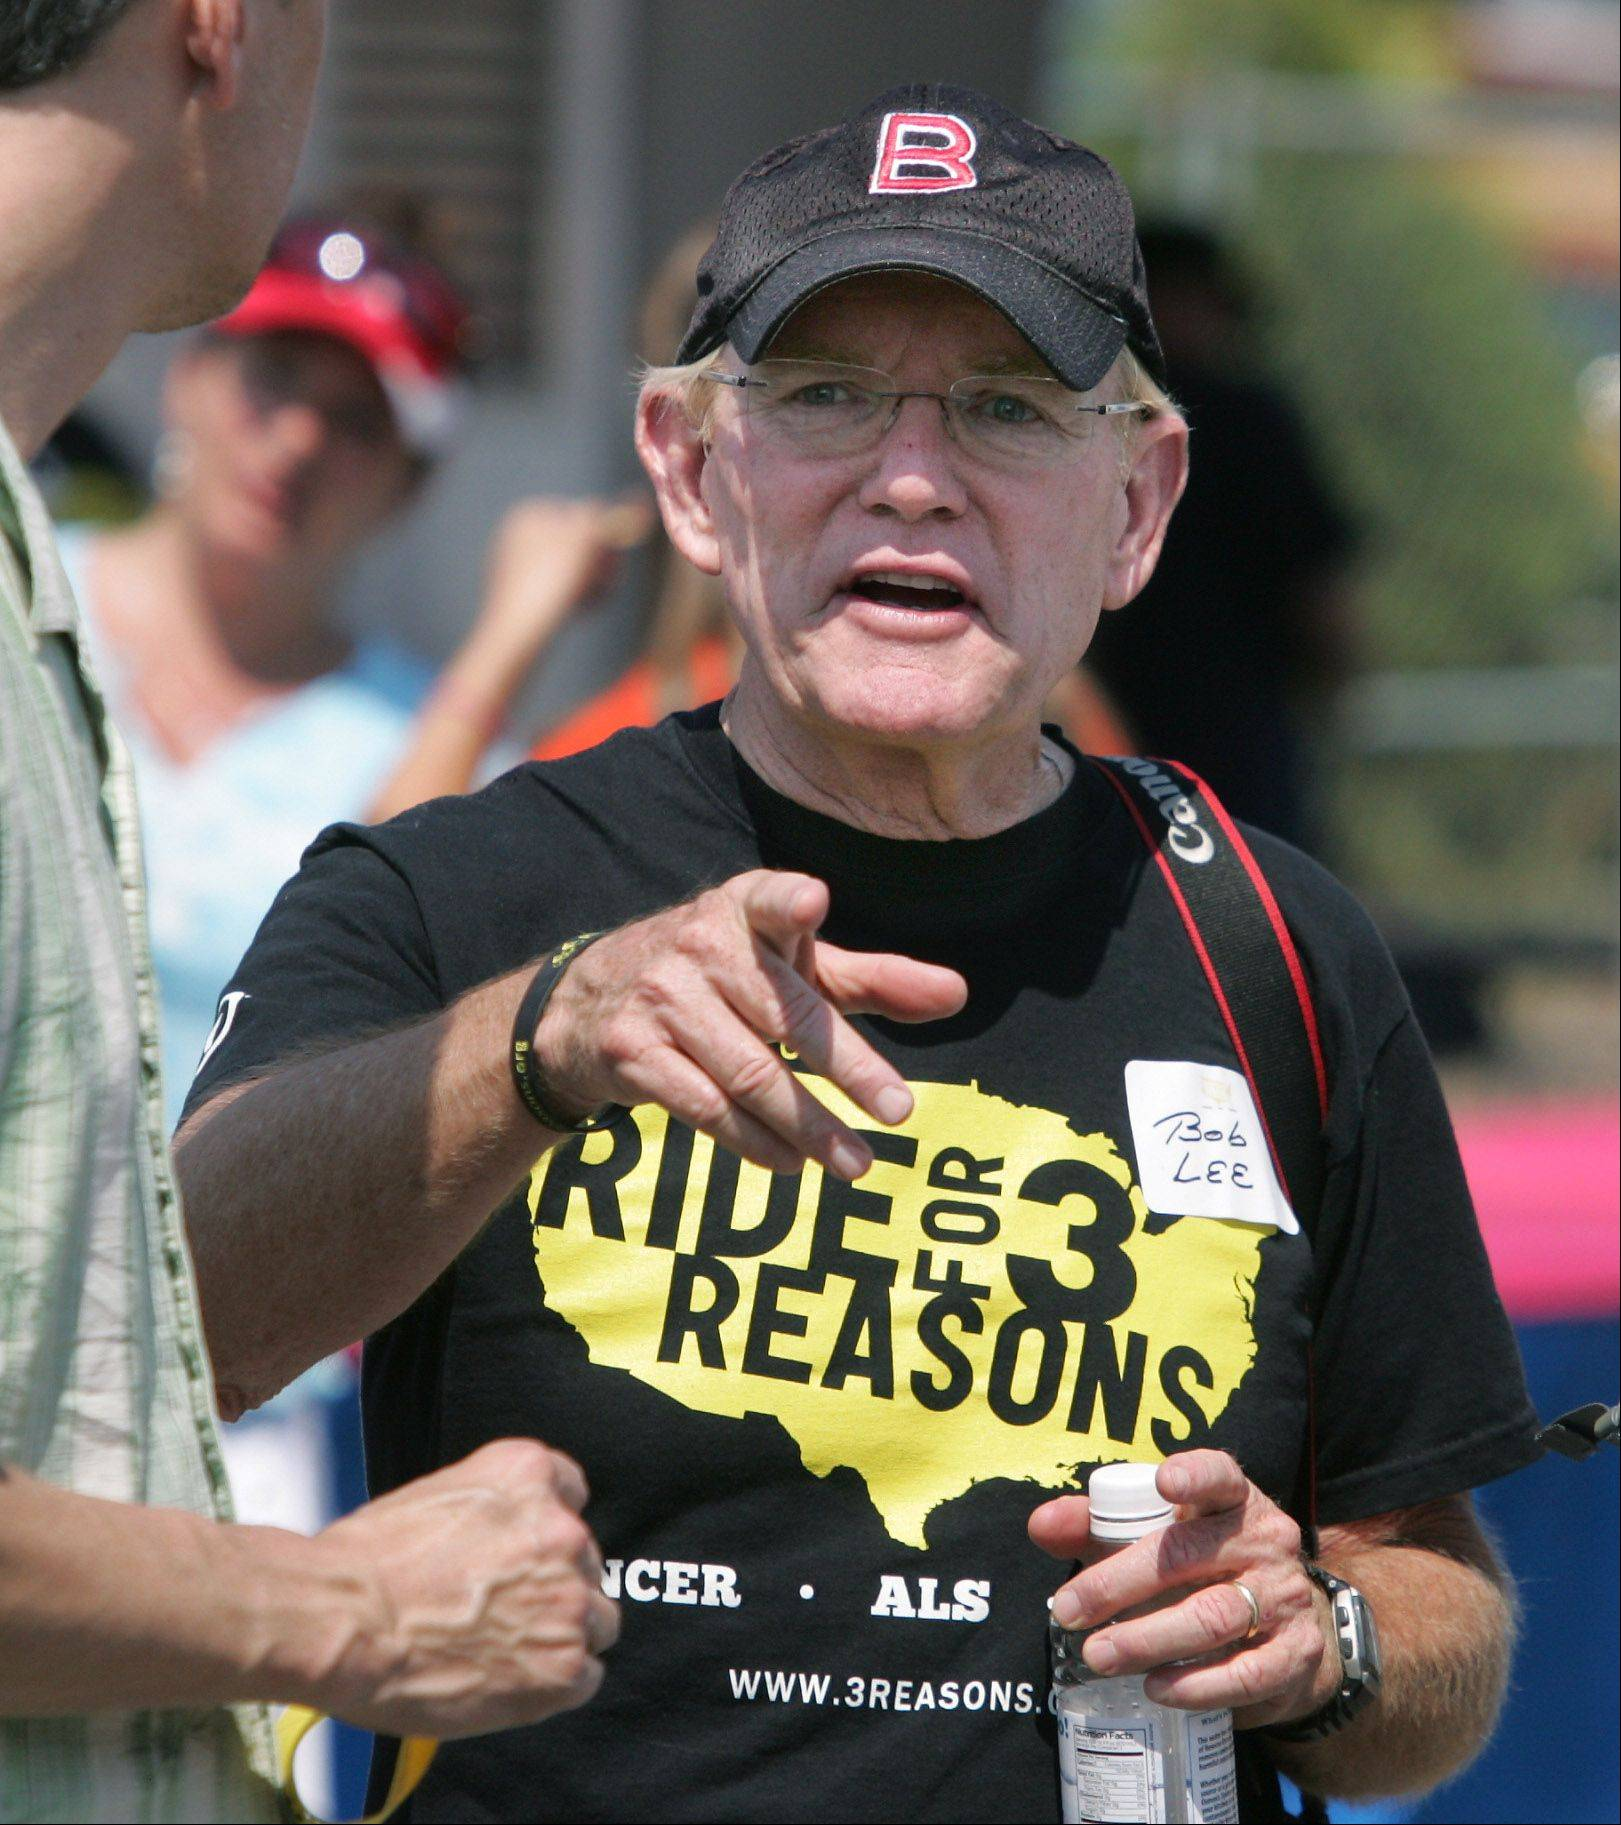 Bicyclist Bob Lee of Barrington, who received media attention coast to coast for his three Ride for Reasons, is back in the community supporting a campaign for living wills called BeAtEase.